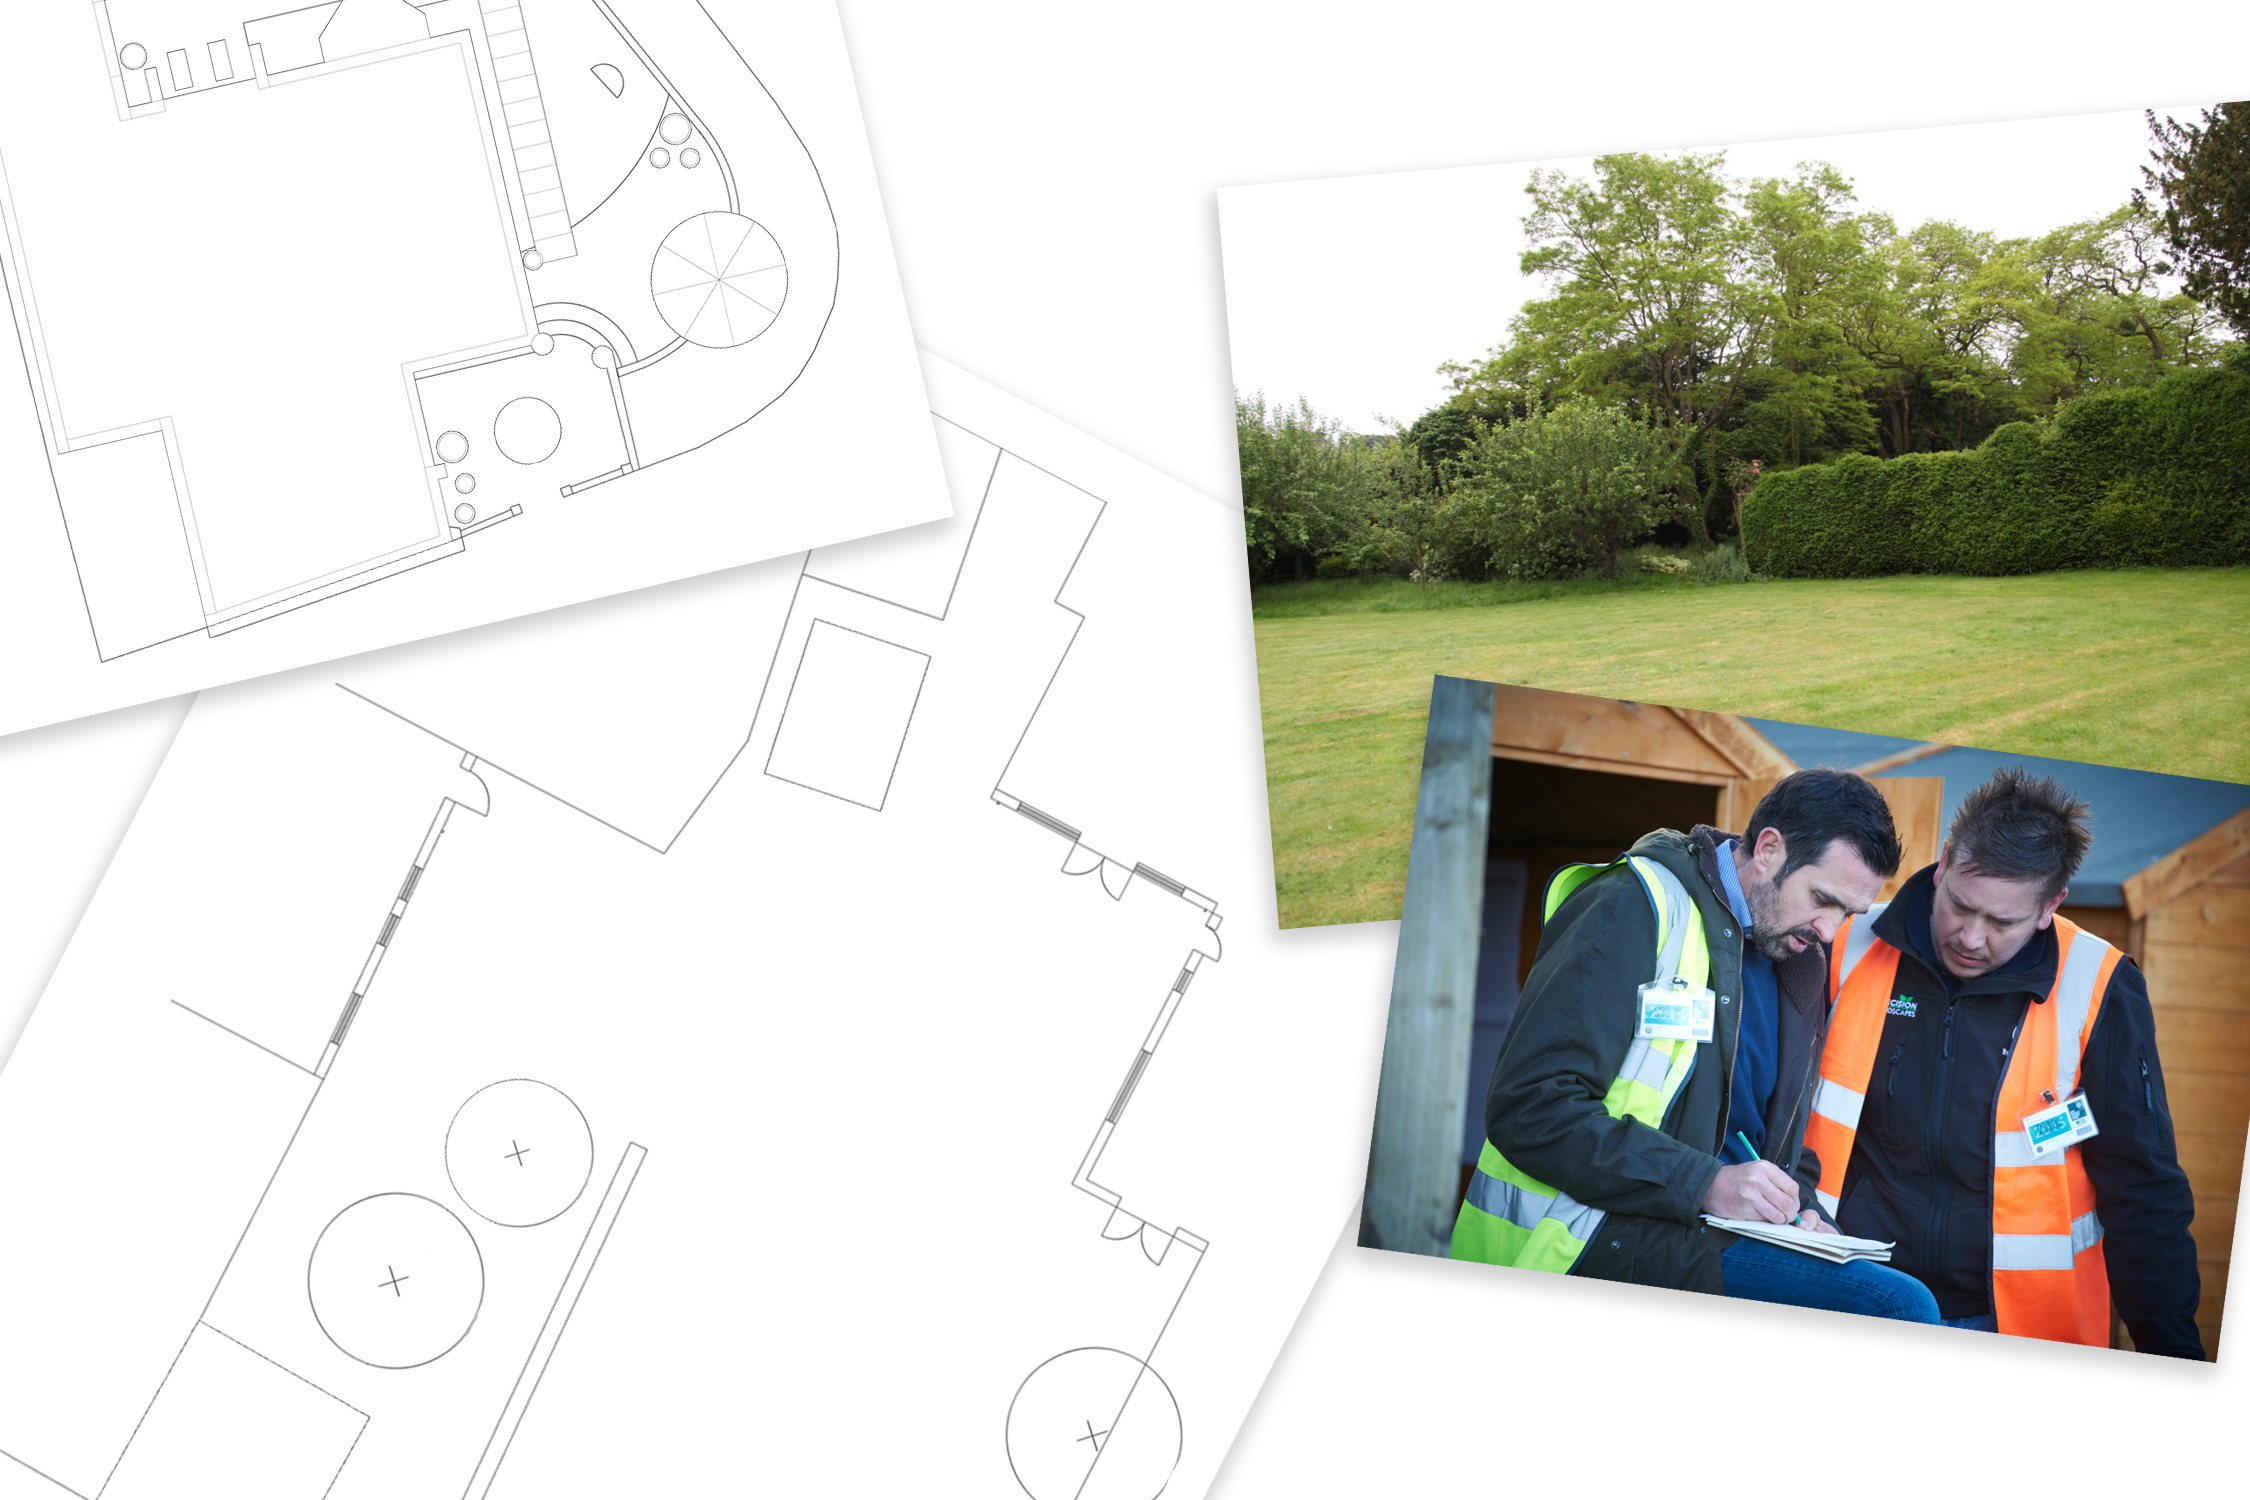 Garden survey and consultation drawings by Adam Frost